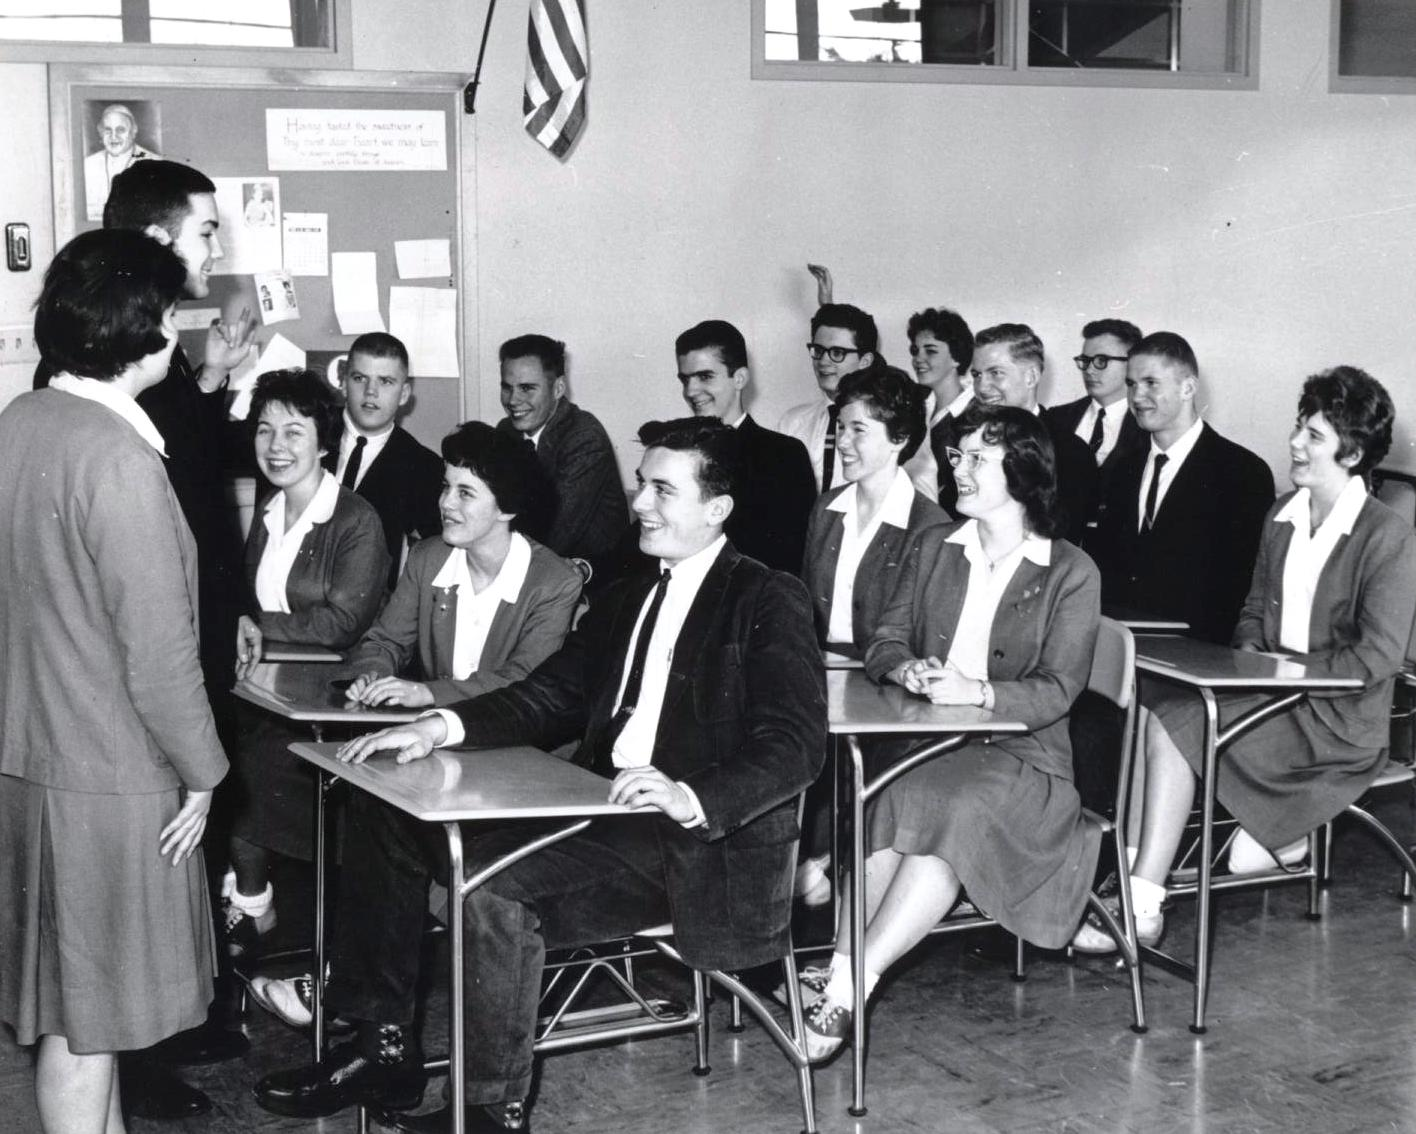 Students at Blanchet High School in classroom. VR1040.0099